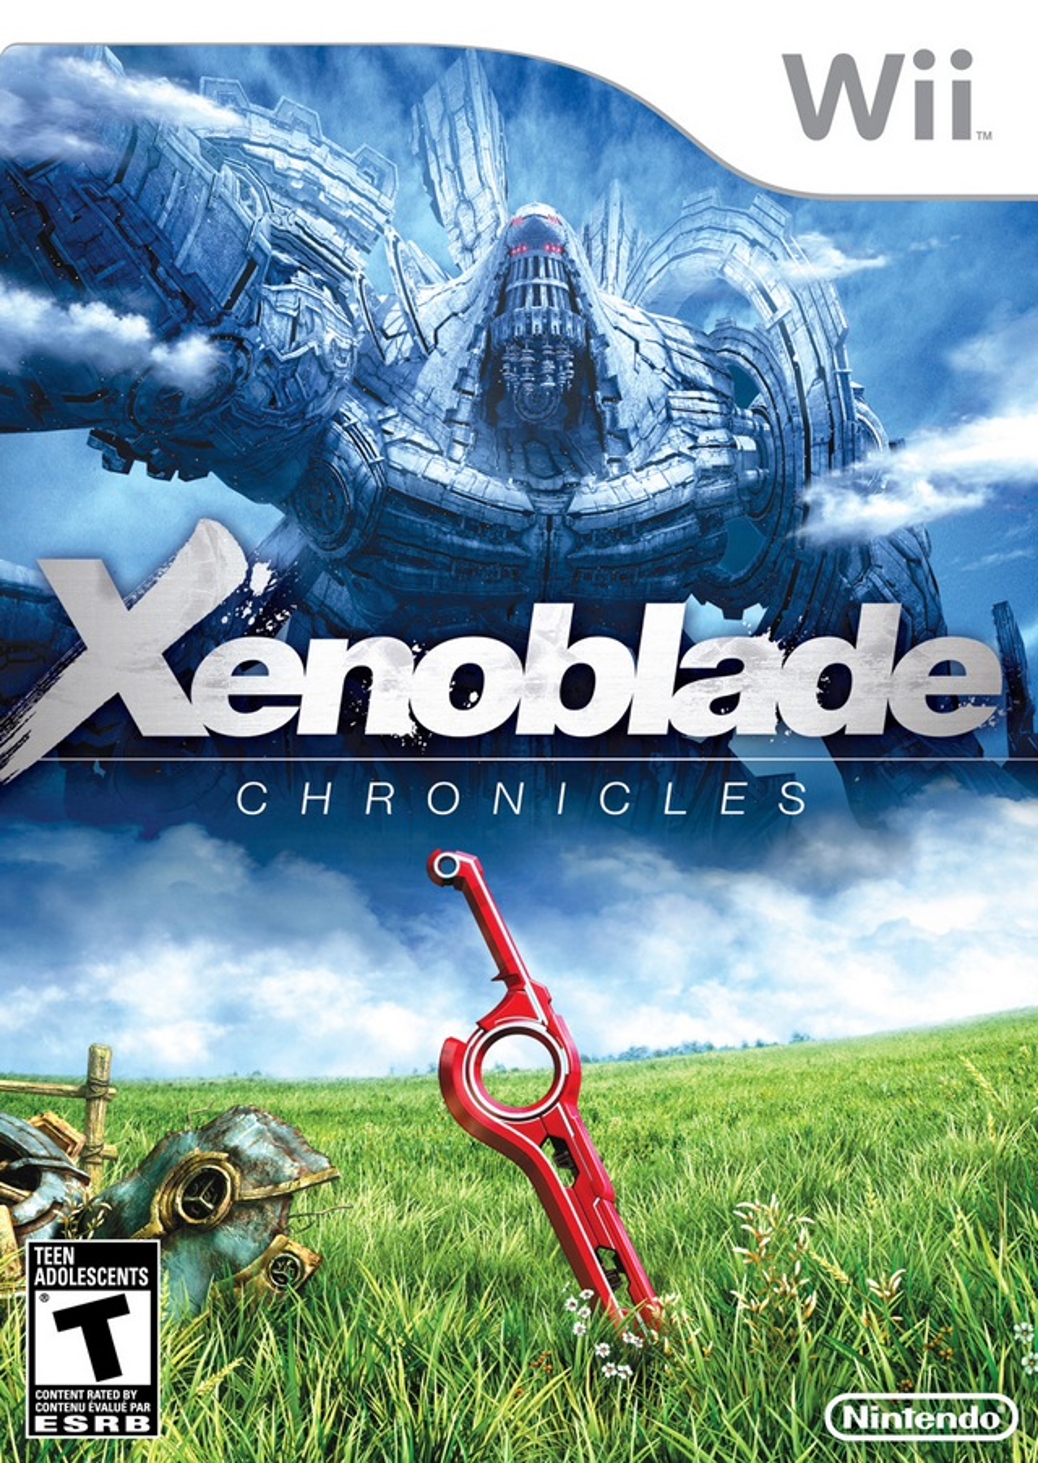 Xenoblade Chronicles - Wii - North American Box Art